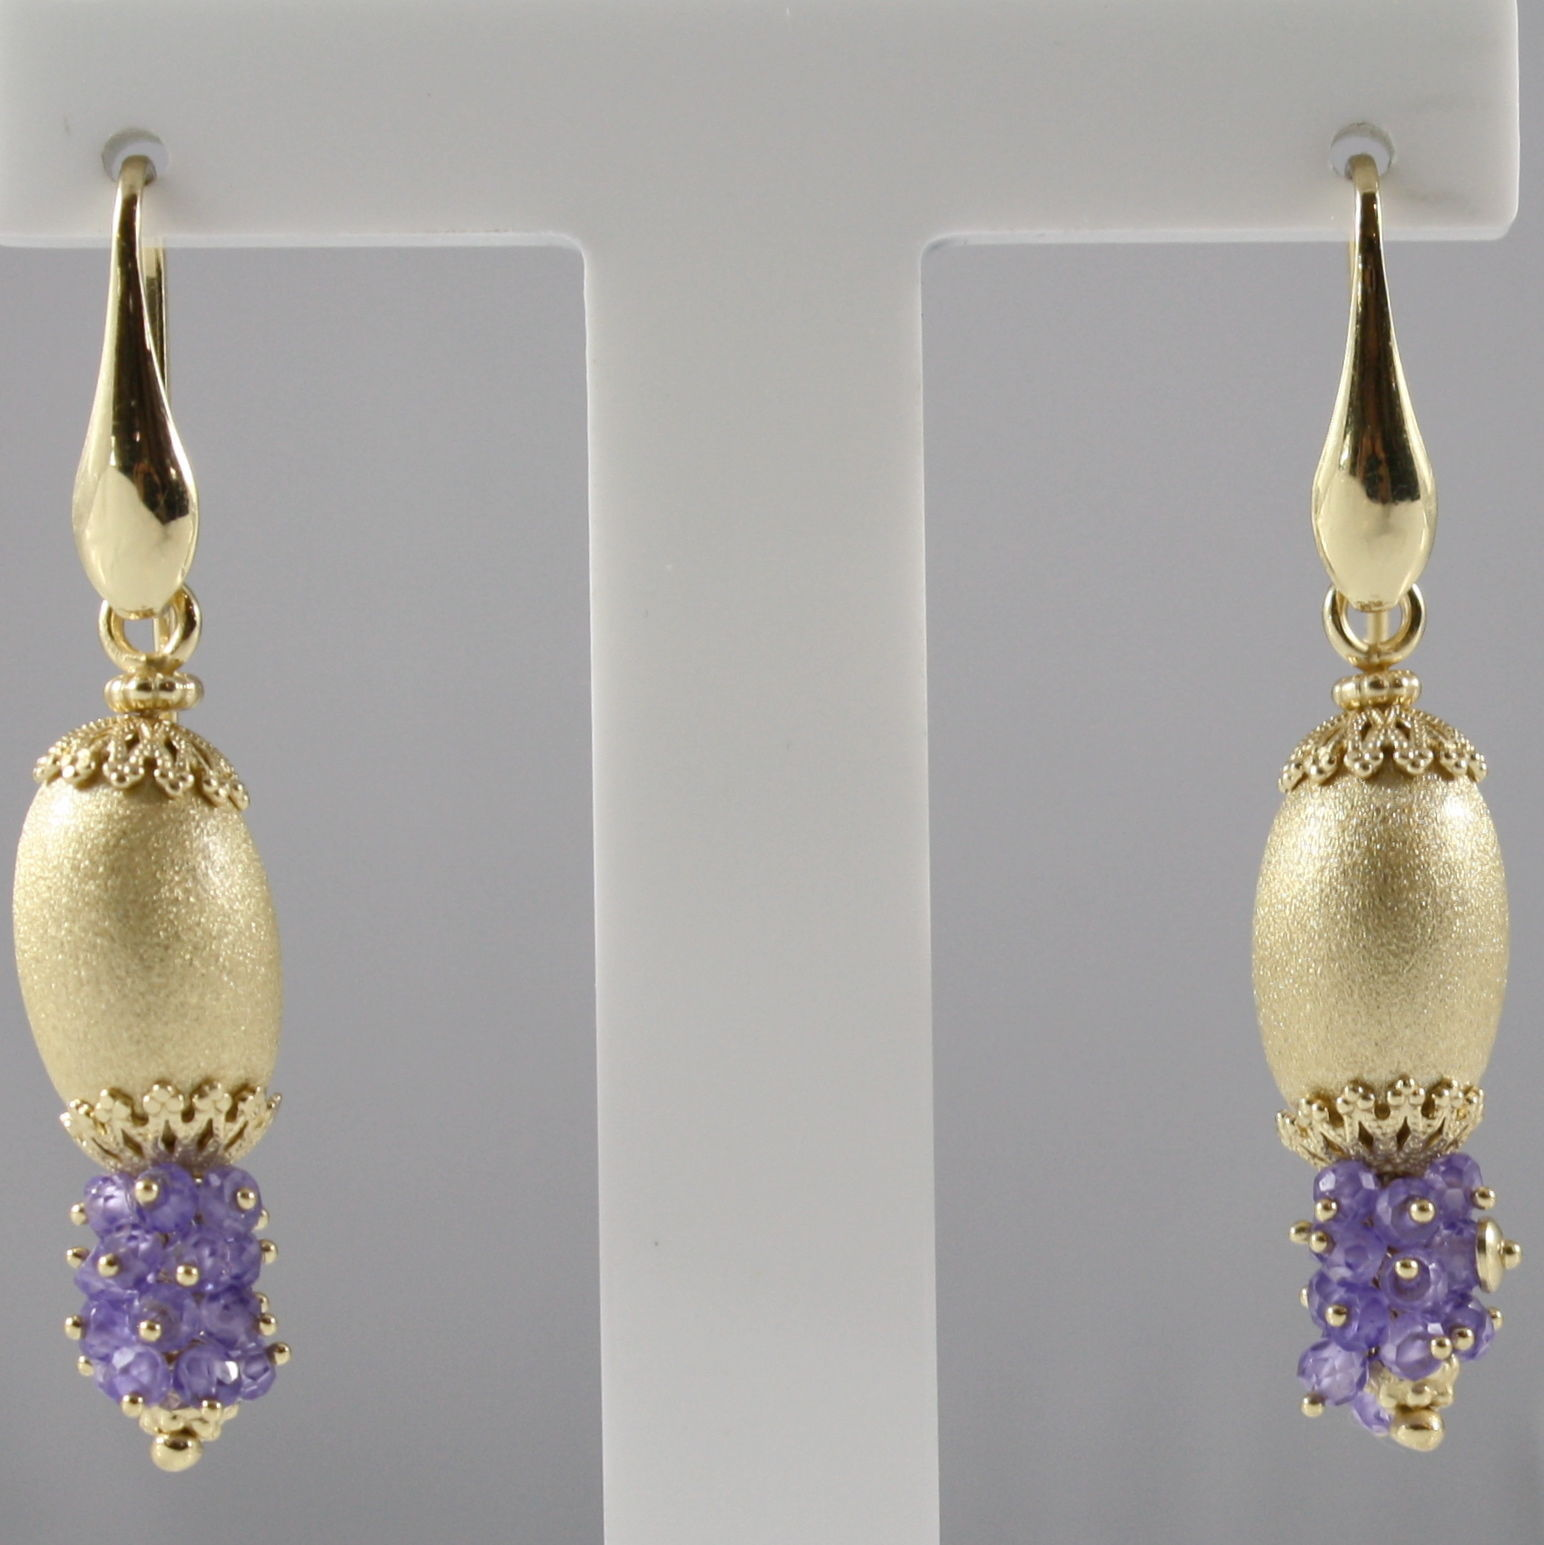 925 SILVER EARRINGS PLAT. GOLD, FACETED AMETHYST, MADE IN ITALY BY SAVOIA JEWEL